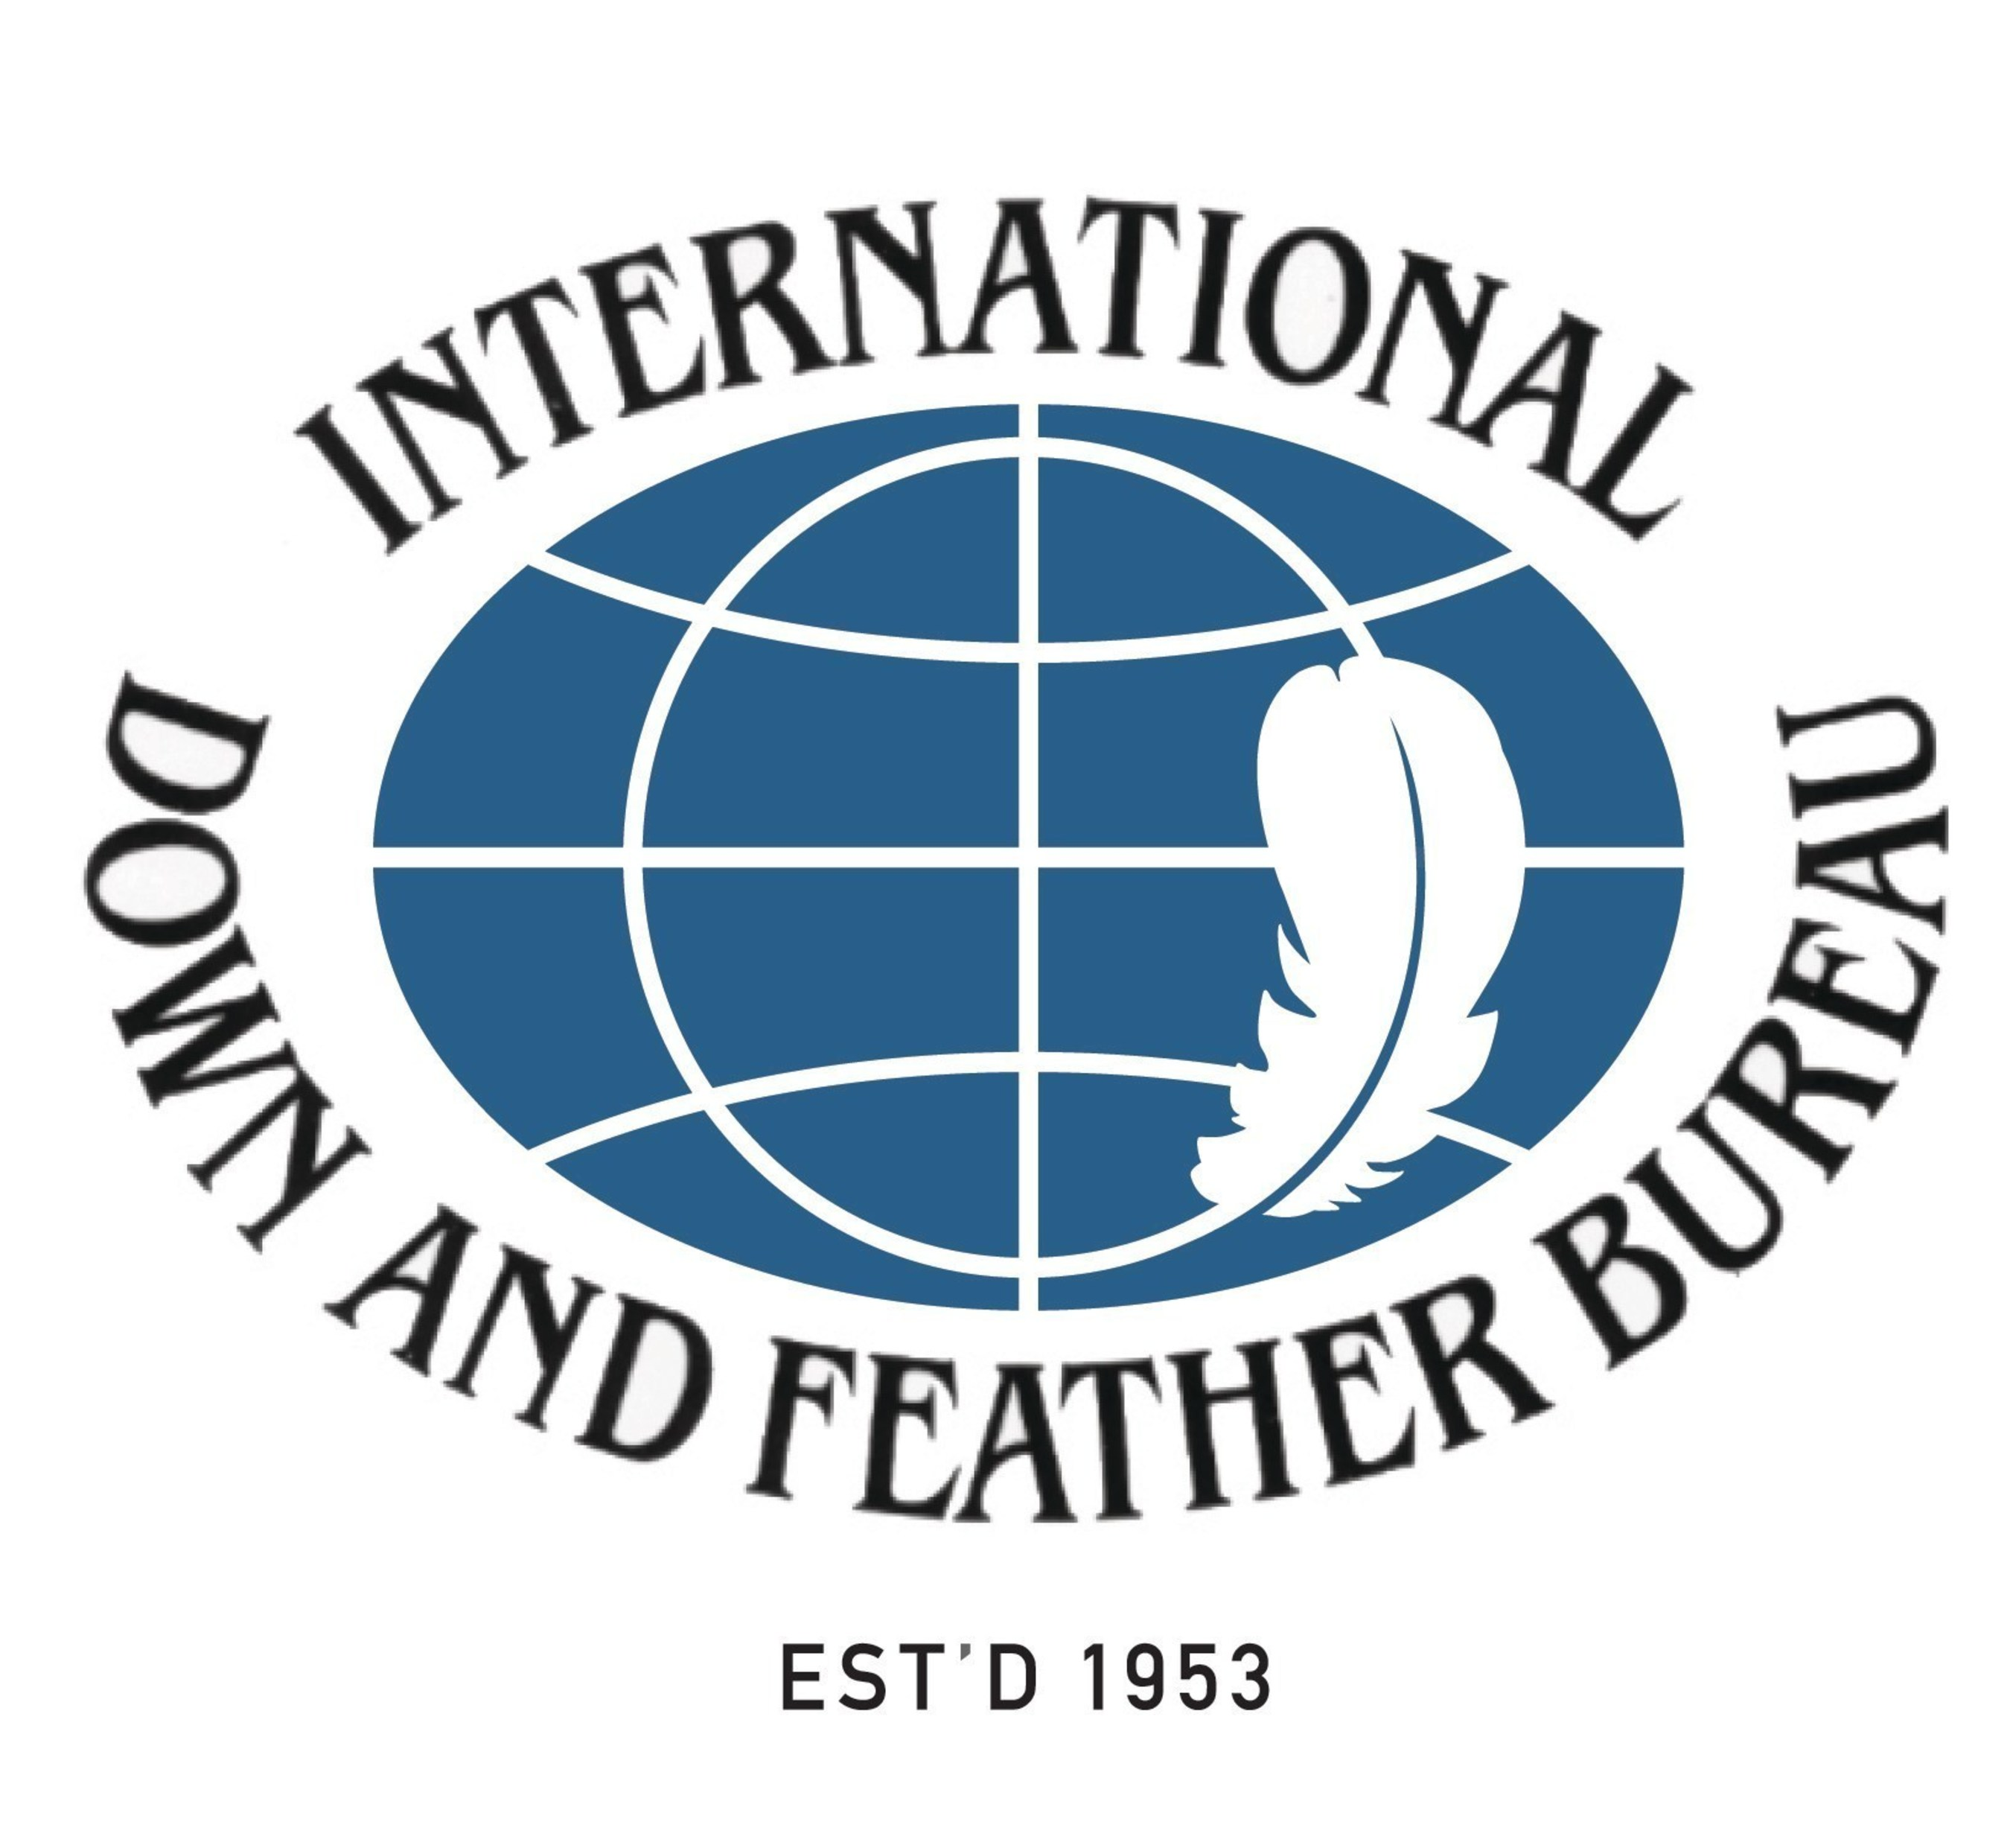 Logo of the International Down and Feather Bureau